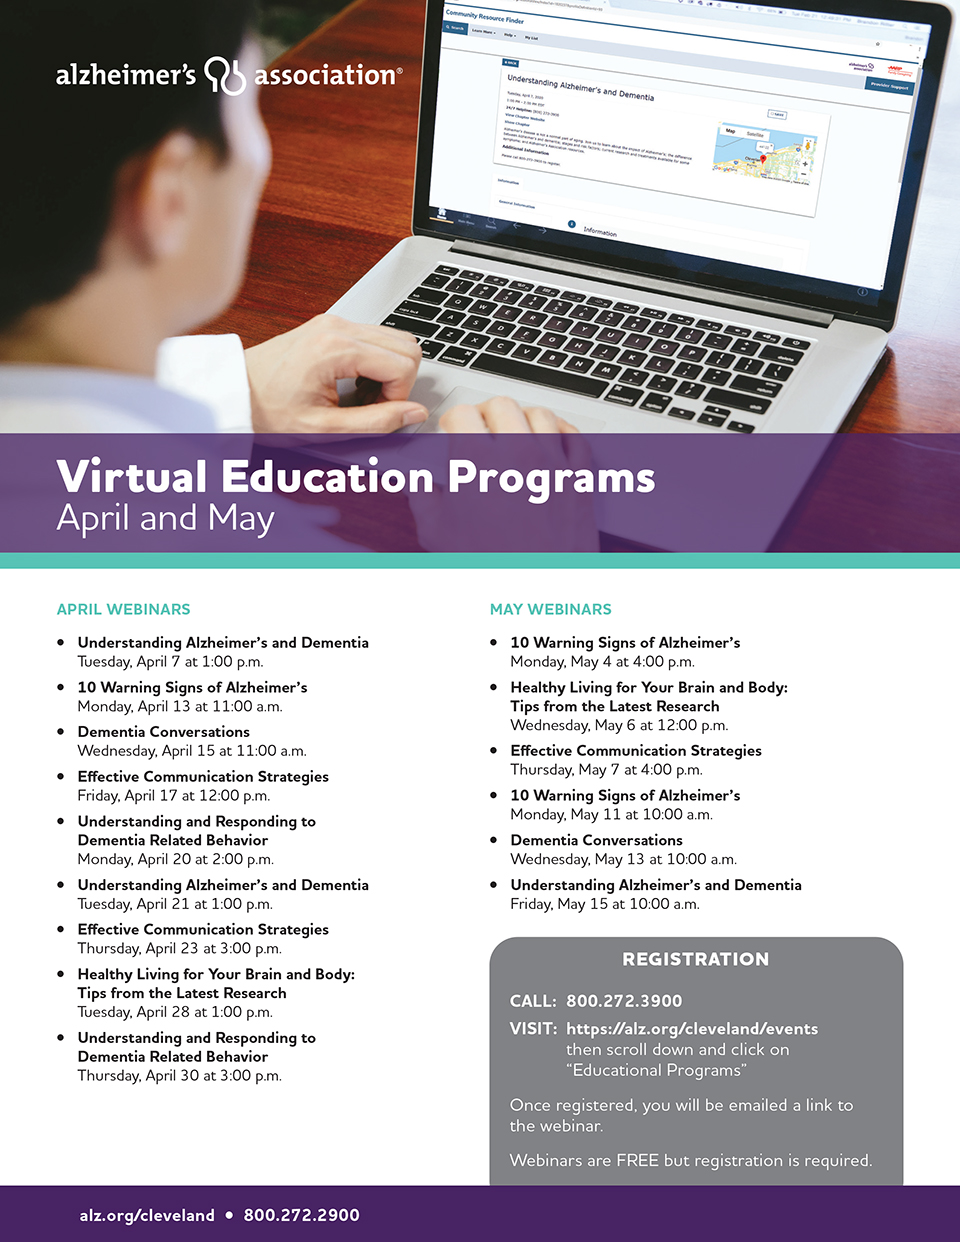 Virtual Education Programs Listing for April and May 2020.